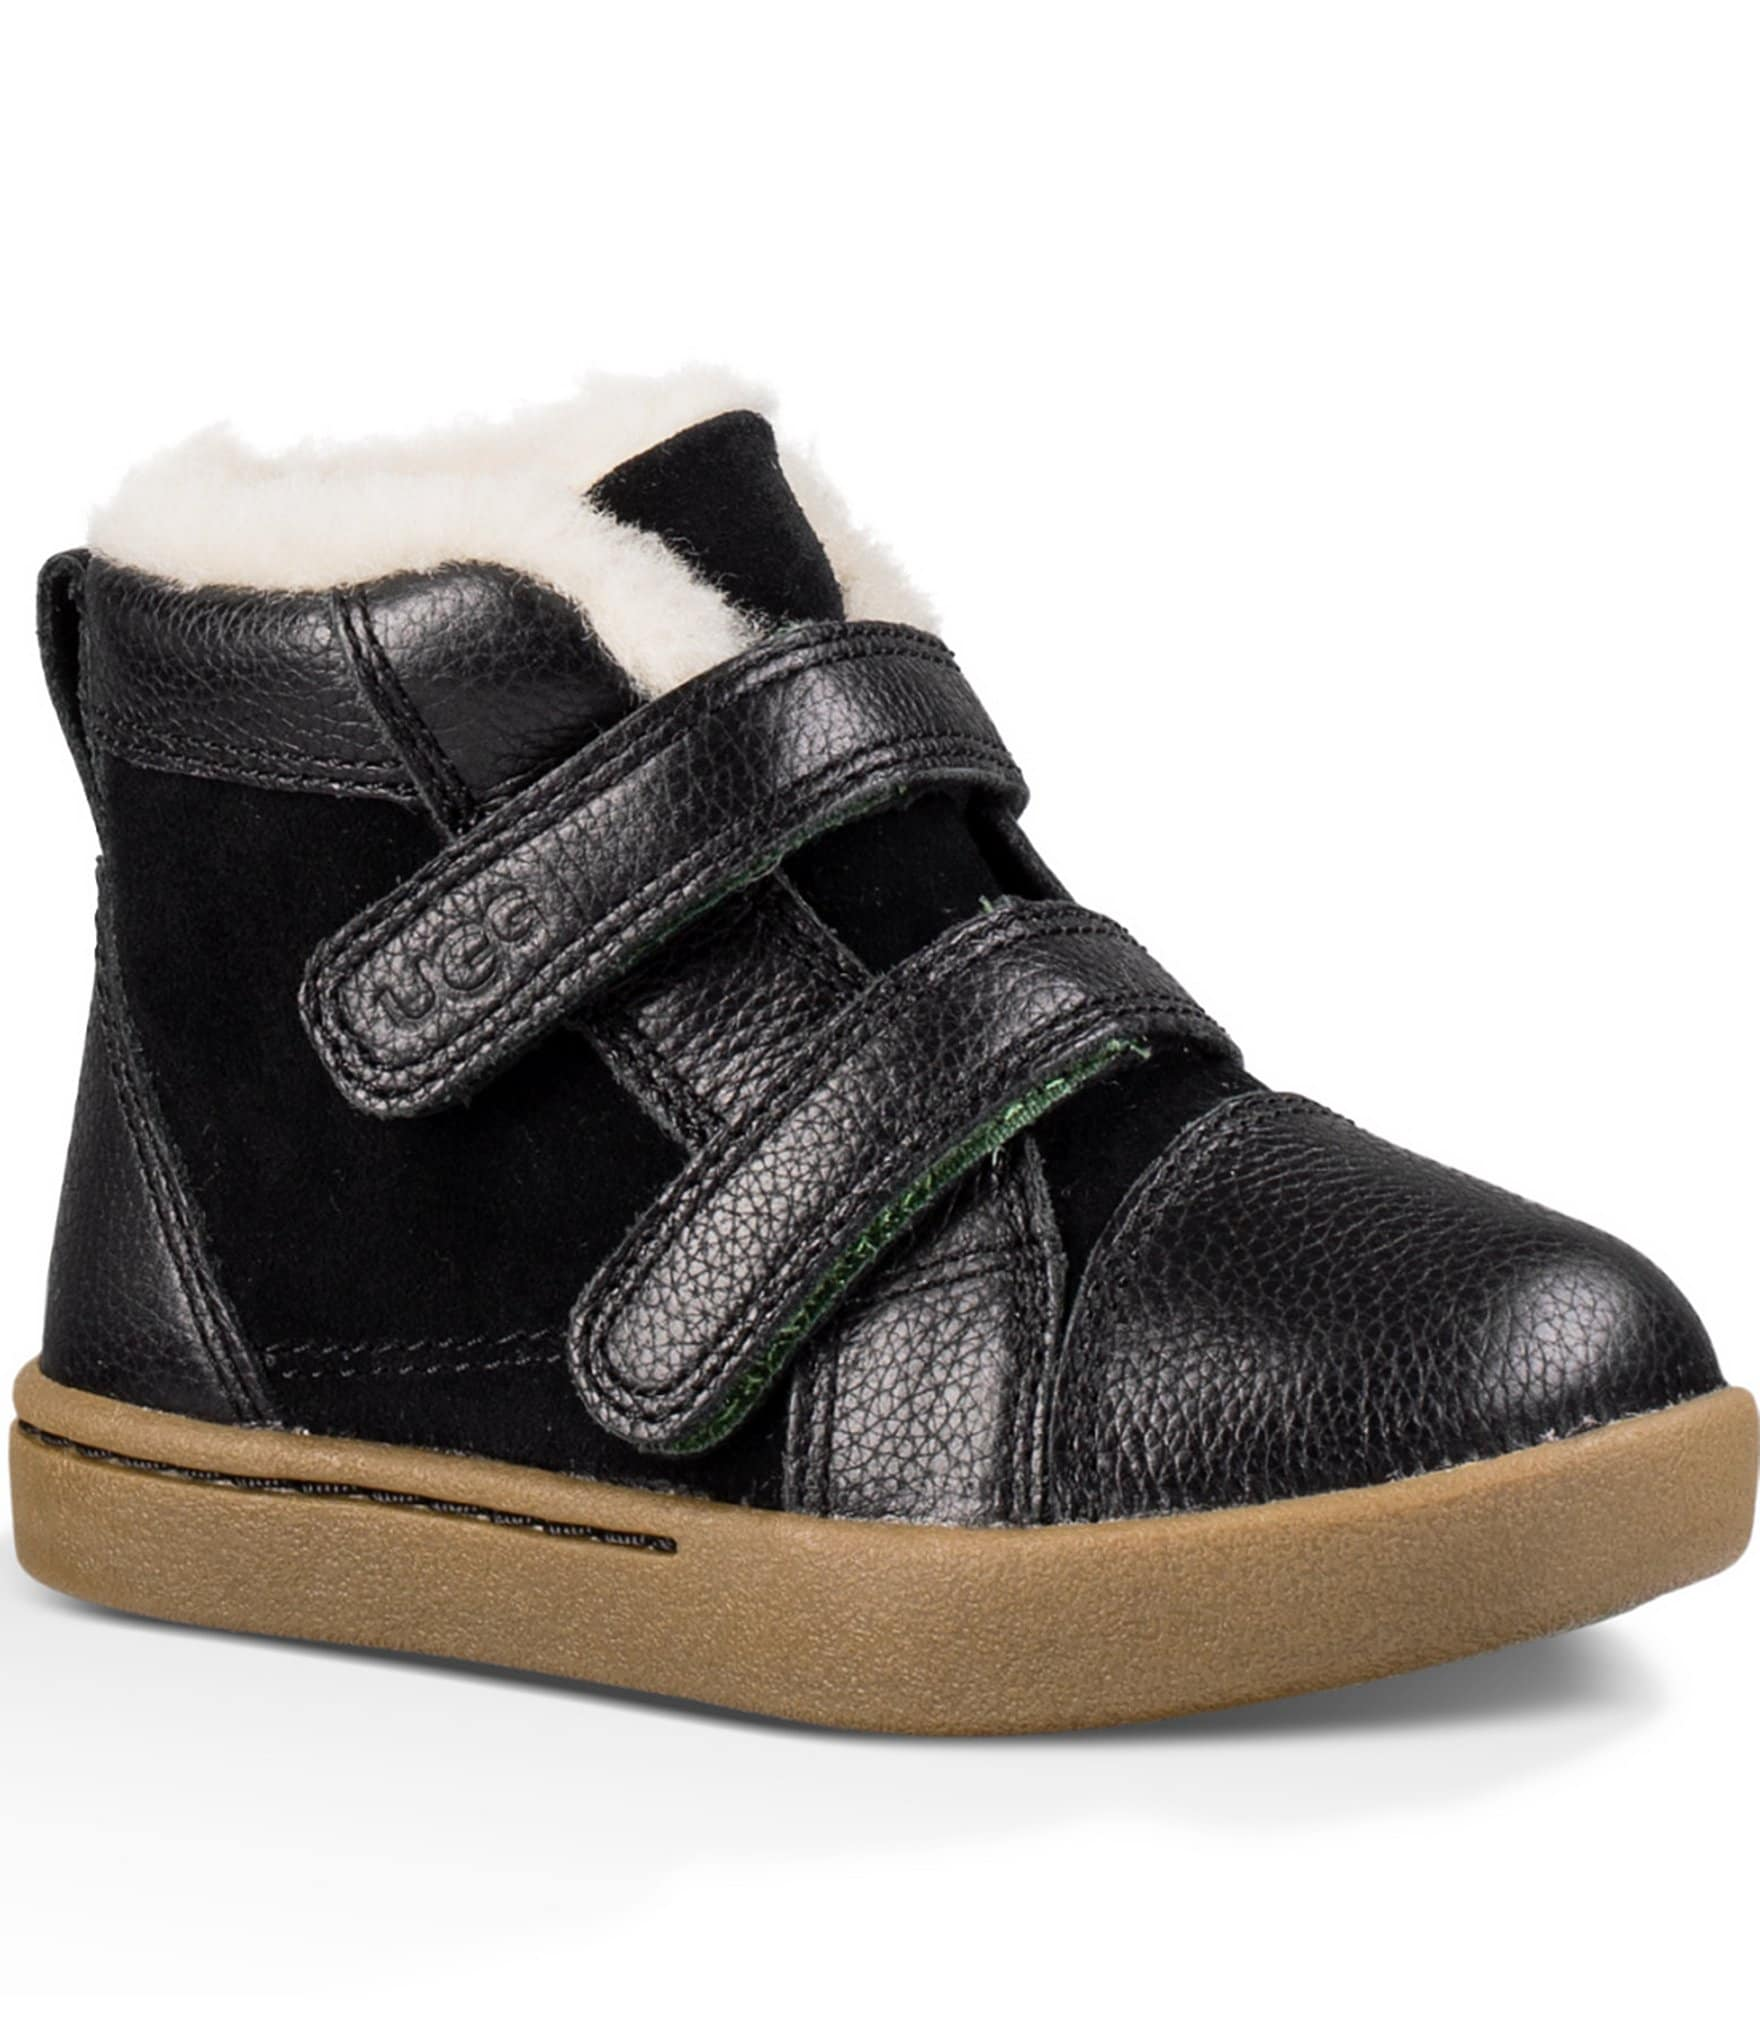 ugg black clabic short leather wp boots He is the fourth-ever winner of the award. Additionally, the Chicago-based non-profit organization iPaintMyMind will display the art of many burgeoning local artists, ugg slipper boots mens clLQ4 and change the work out .